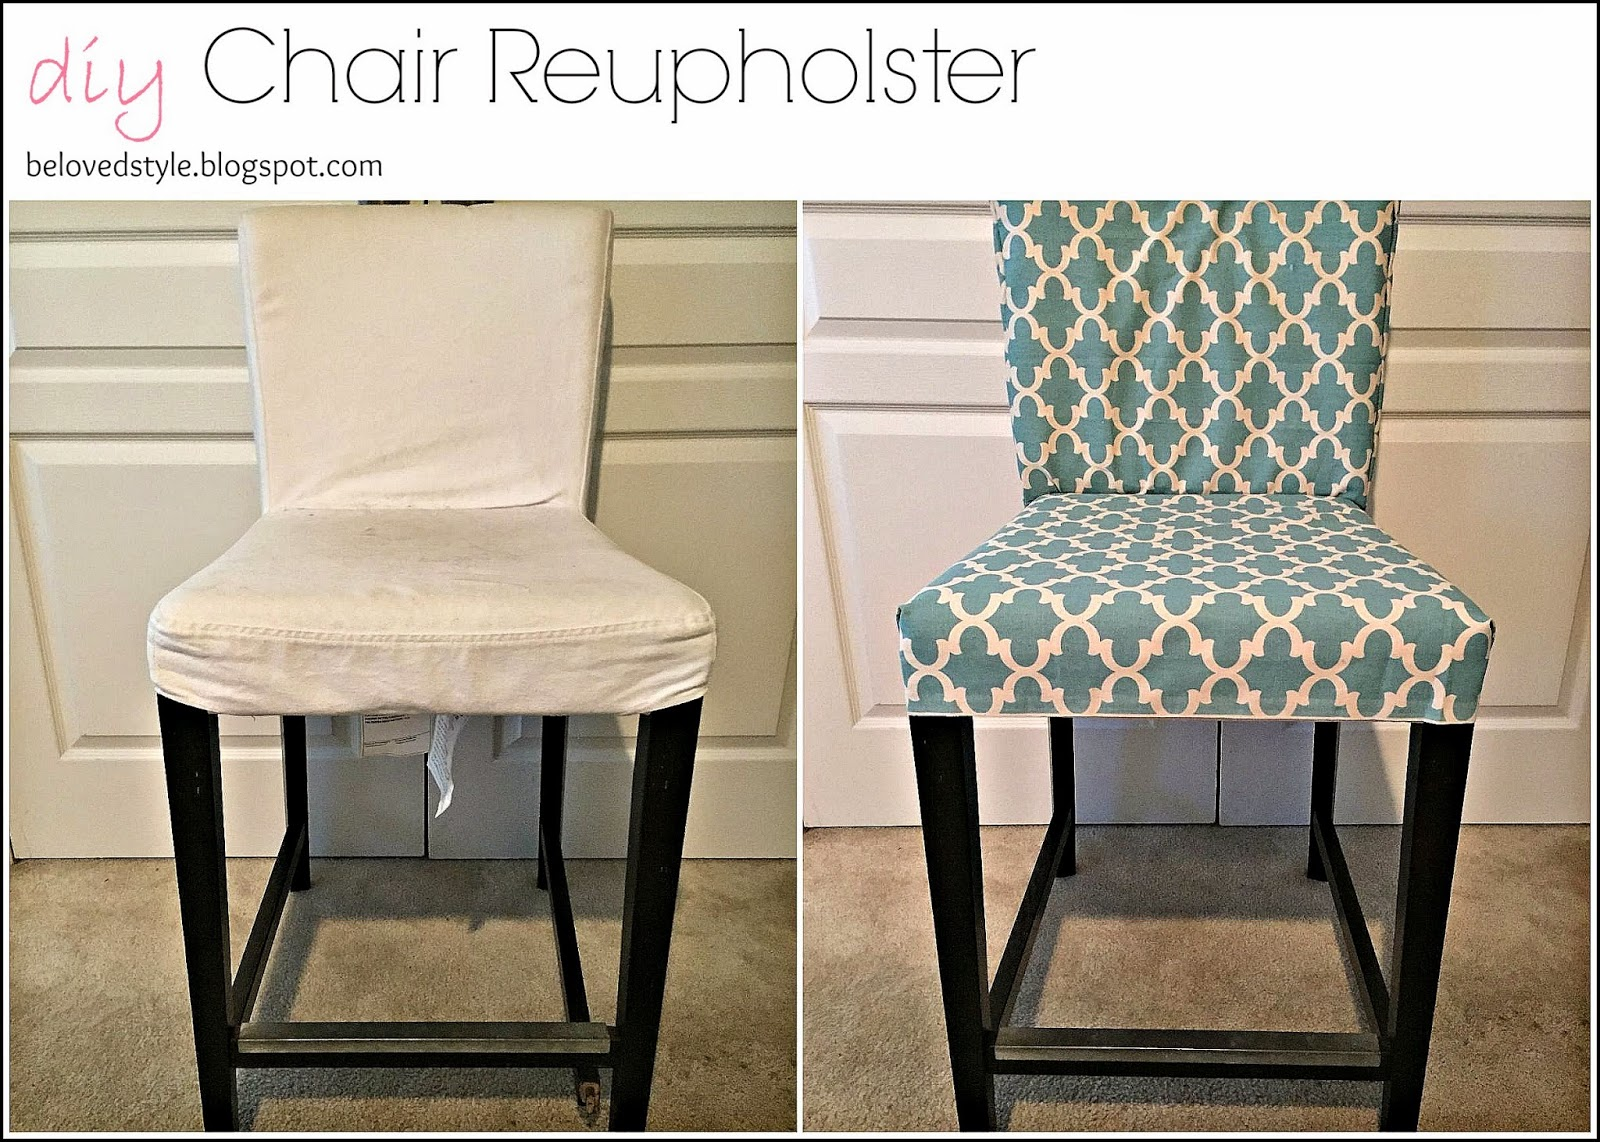 reupholster dining chairs cost home design. Black Bedroom Furniture Sets. Home Design Ideas